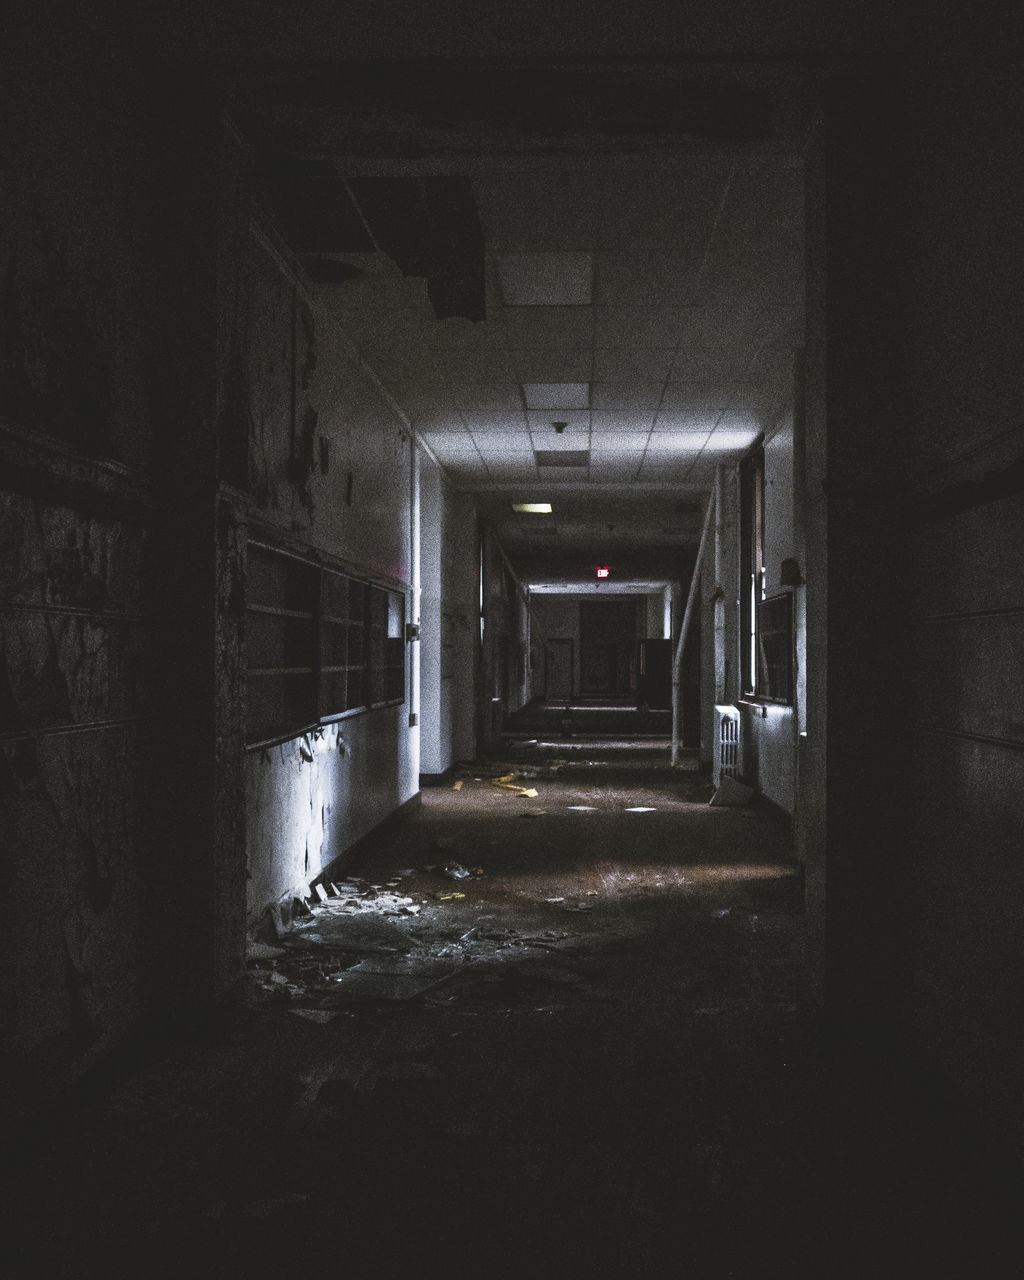 Inside View Of Abandoned Building